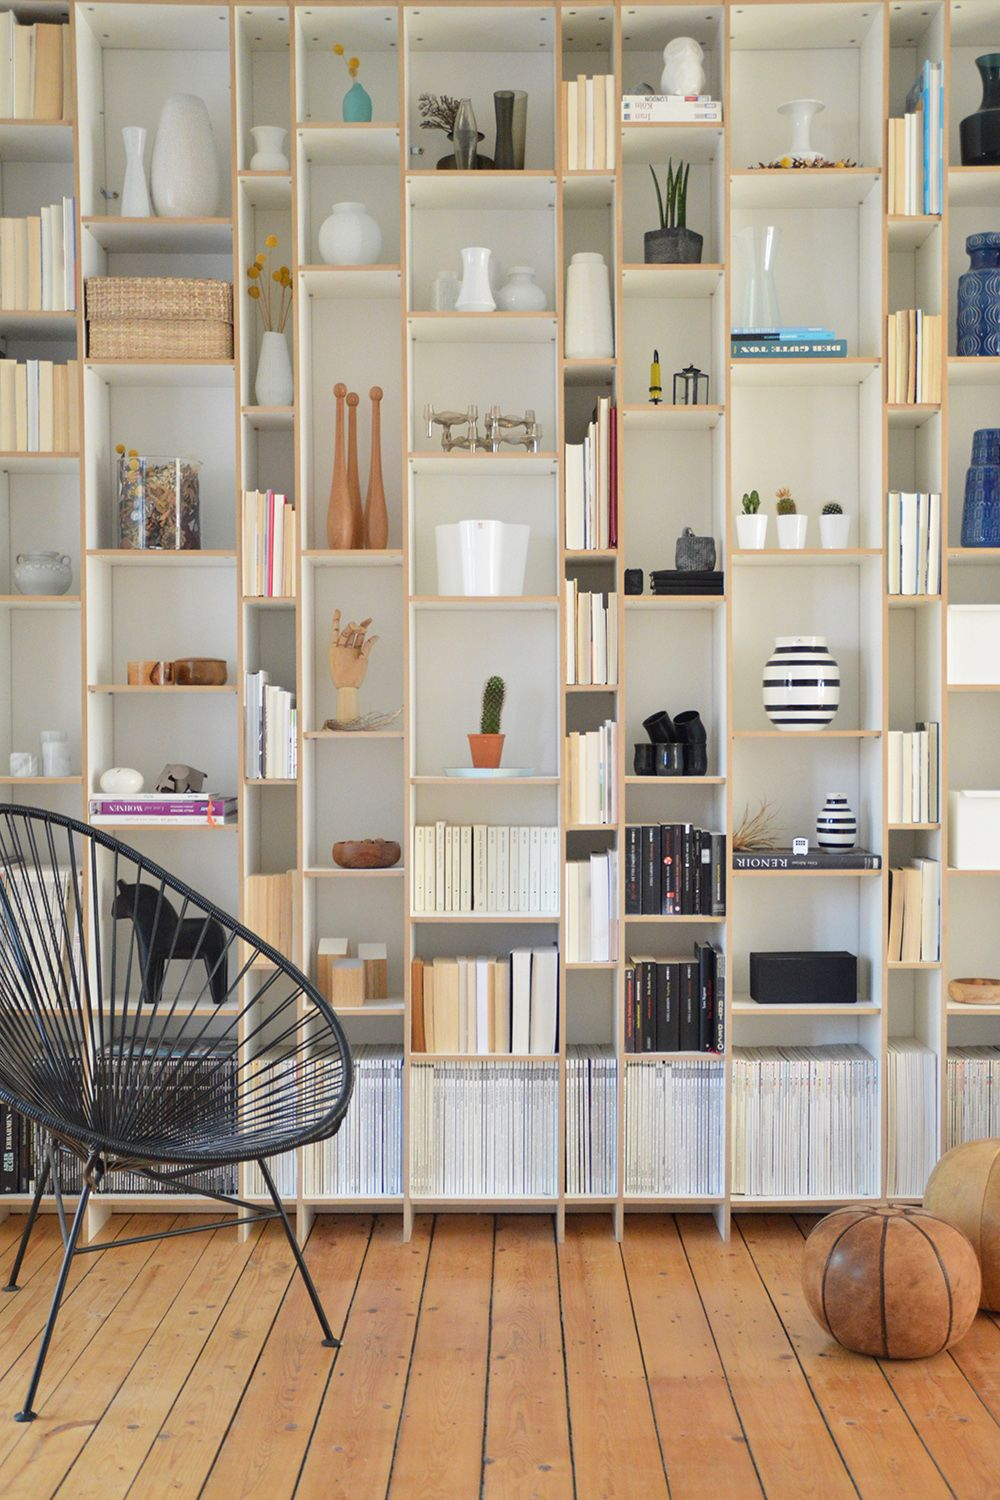 Exquisit Vintage Möbel Bookshelves Bookshelf Styling Und